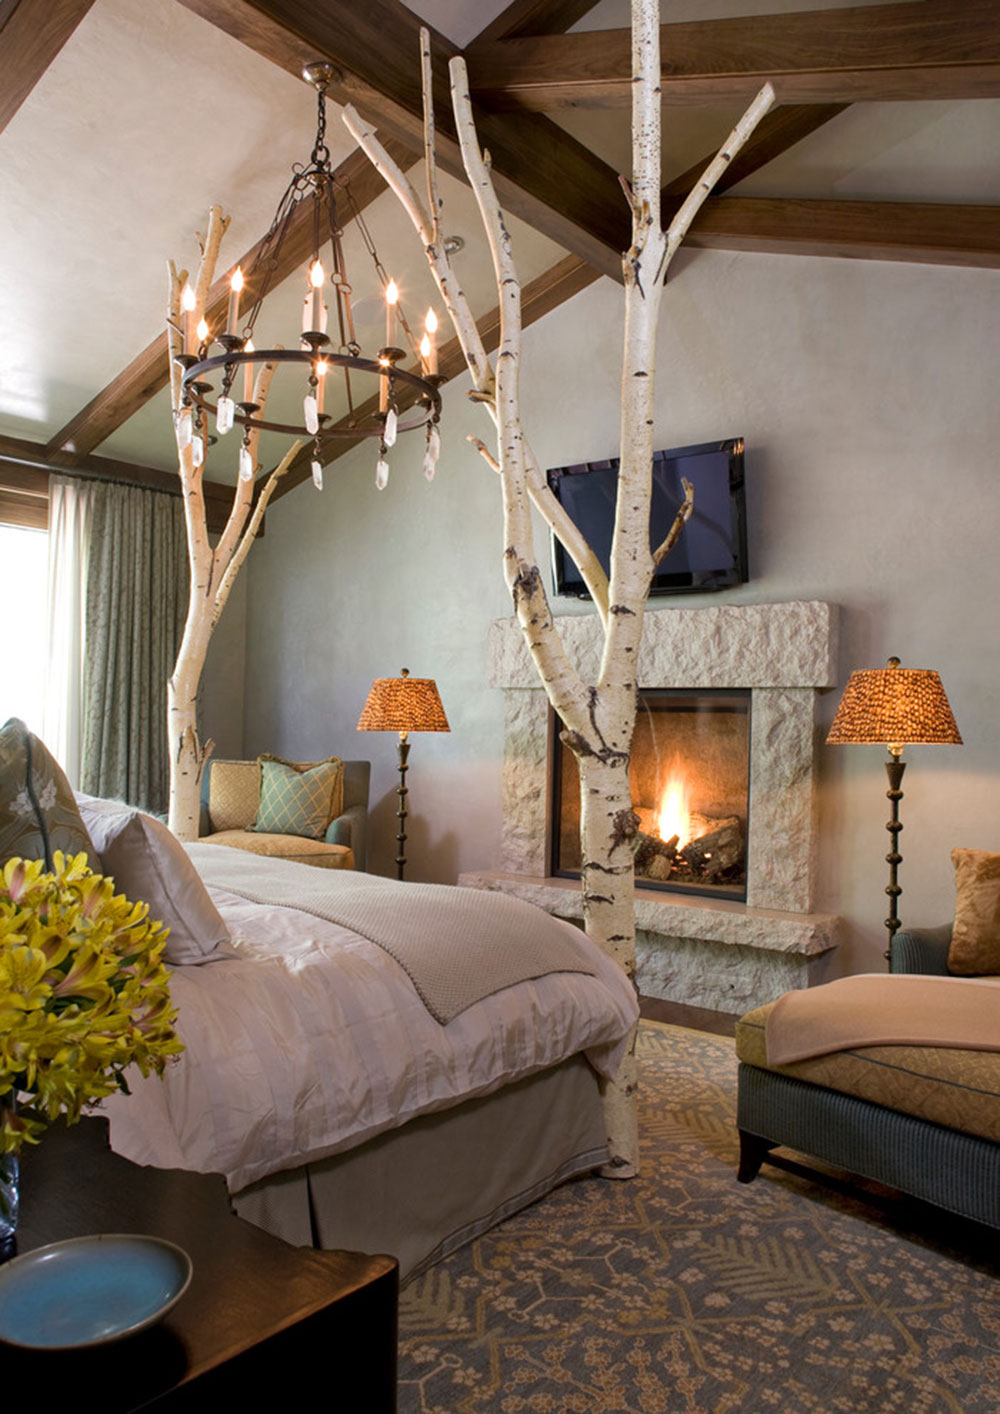 Rockledge-Road-Vail-Residence-by-K.-H.-Webb-Architects Vintage bedroom ideas that shouldn't be overlooked